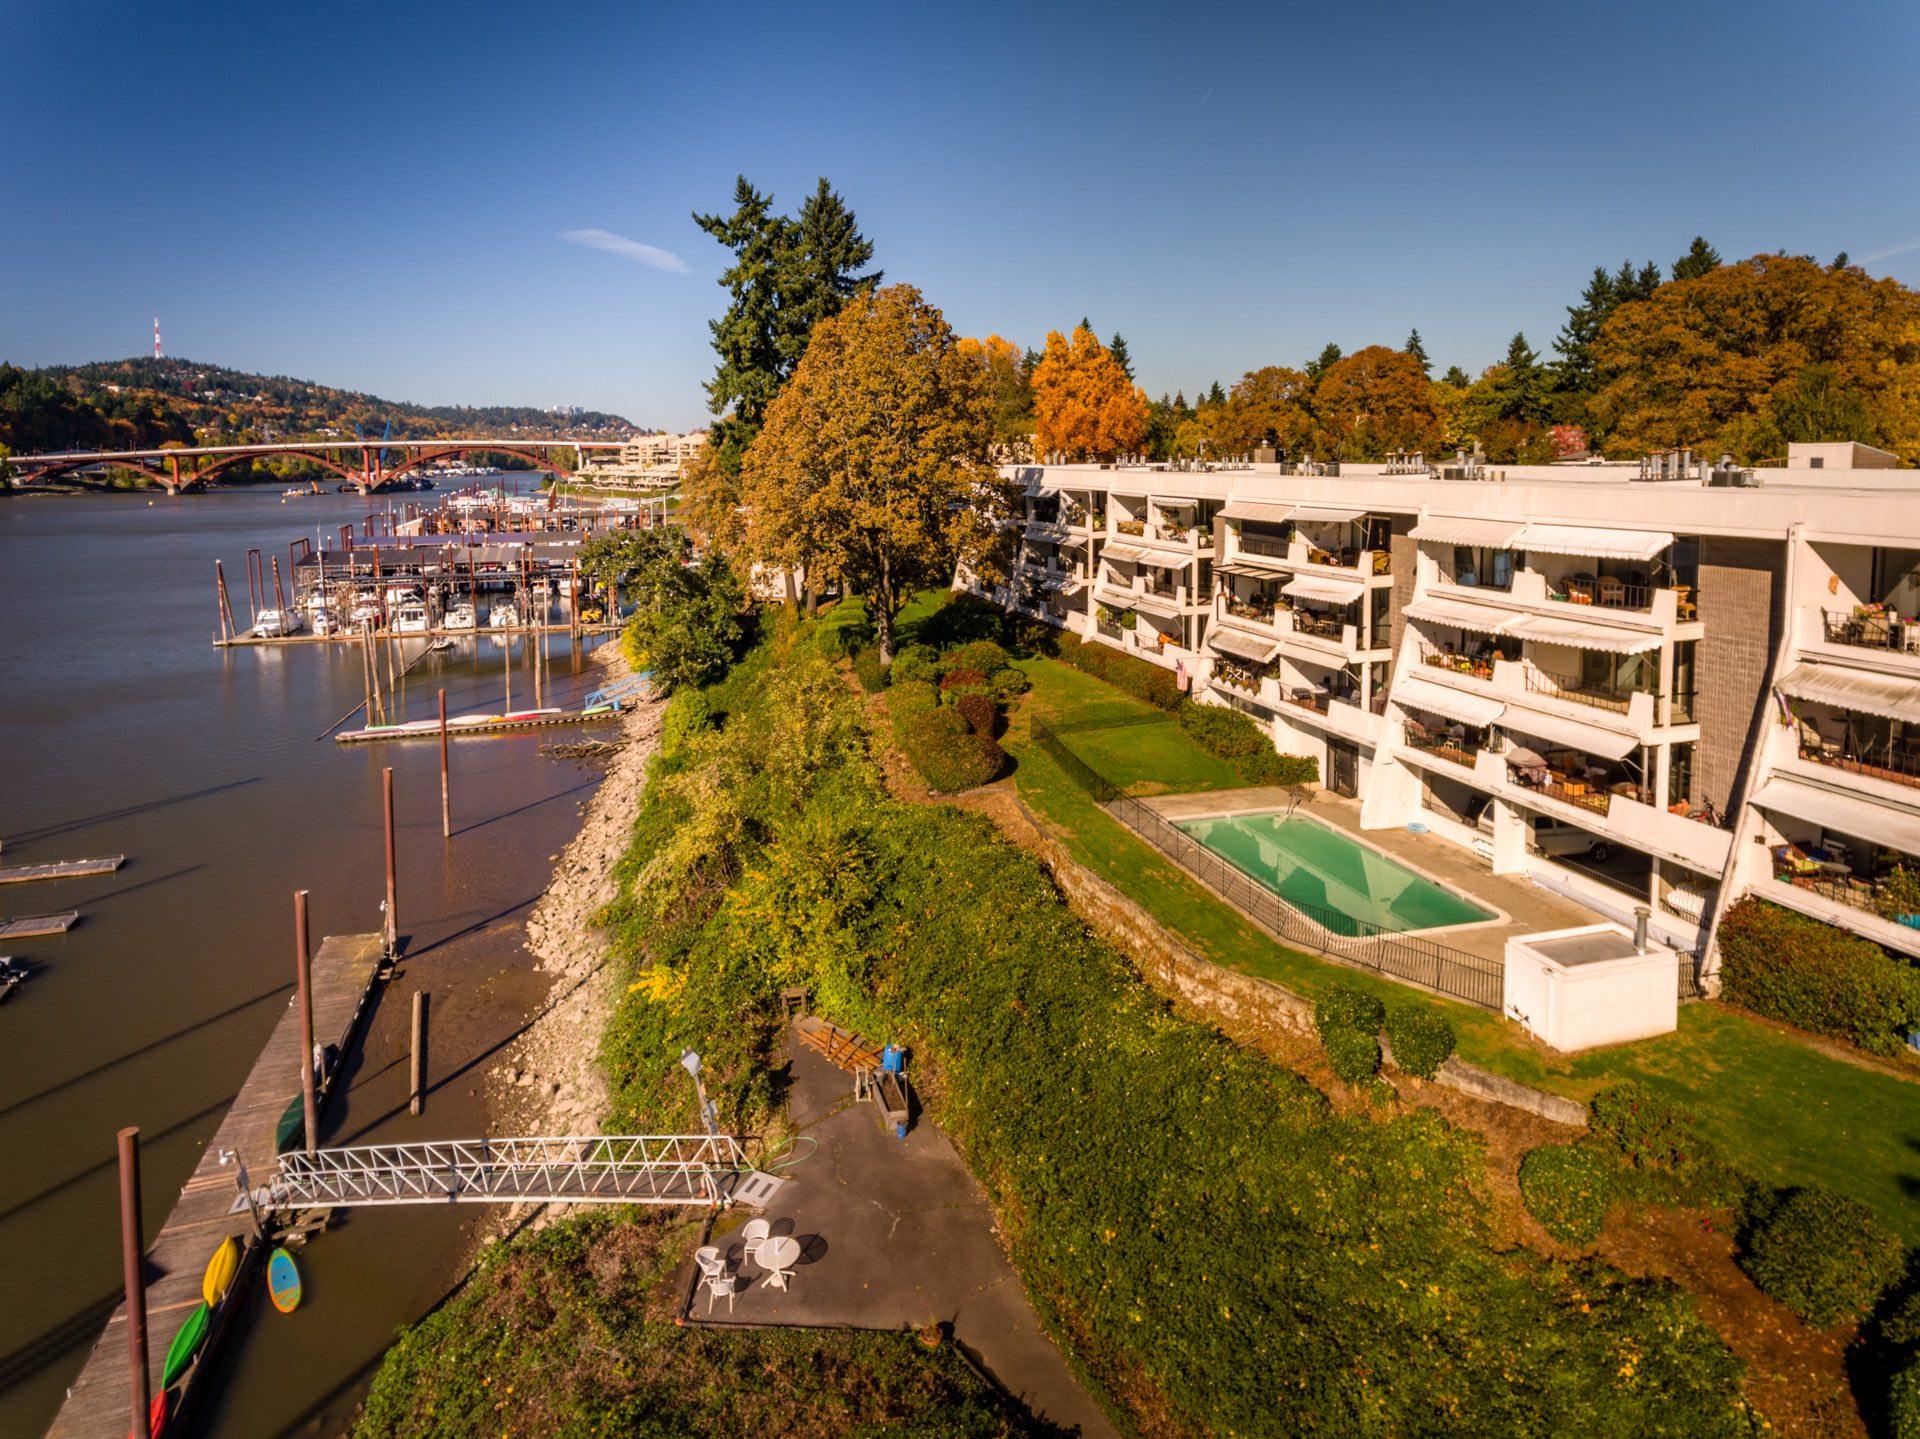 Quayside condominiums along the Willamette river (click to enlarge)